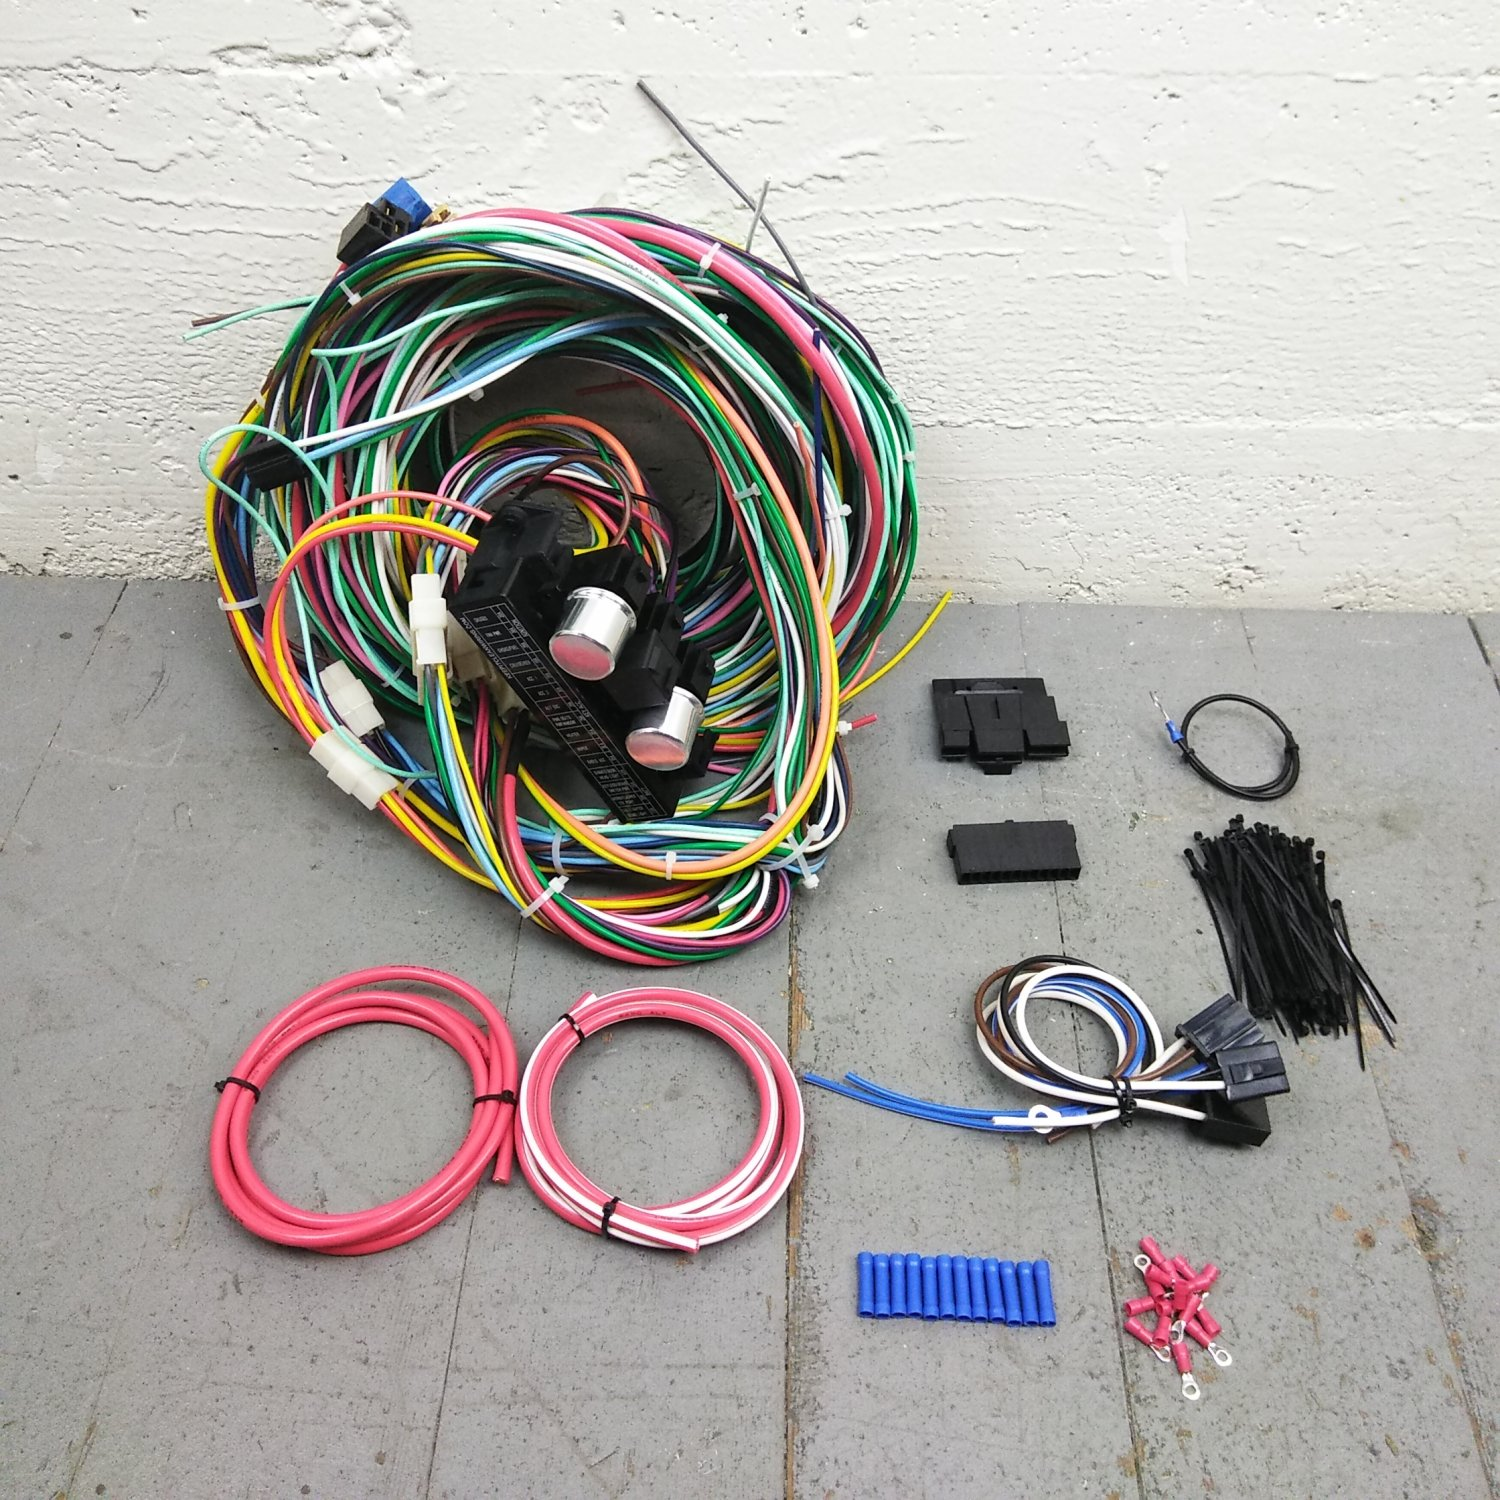 1967 1971 Plymouth Gtx Wire Harness Upgrade Kit Fits Painless Fuse Wiring Block Bar Product Description C